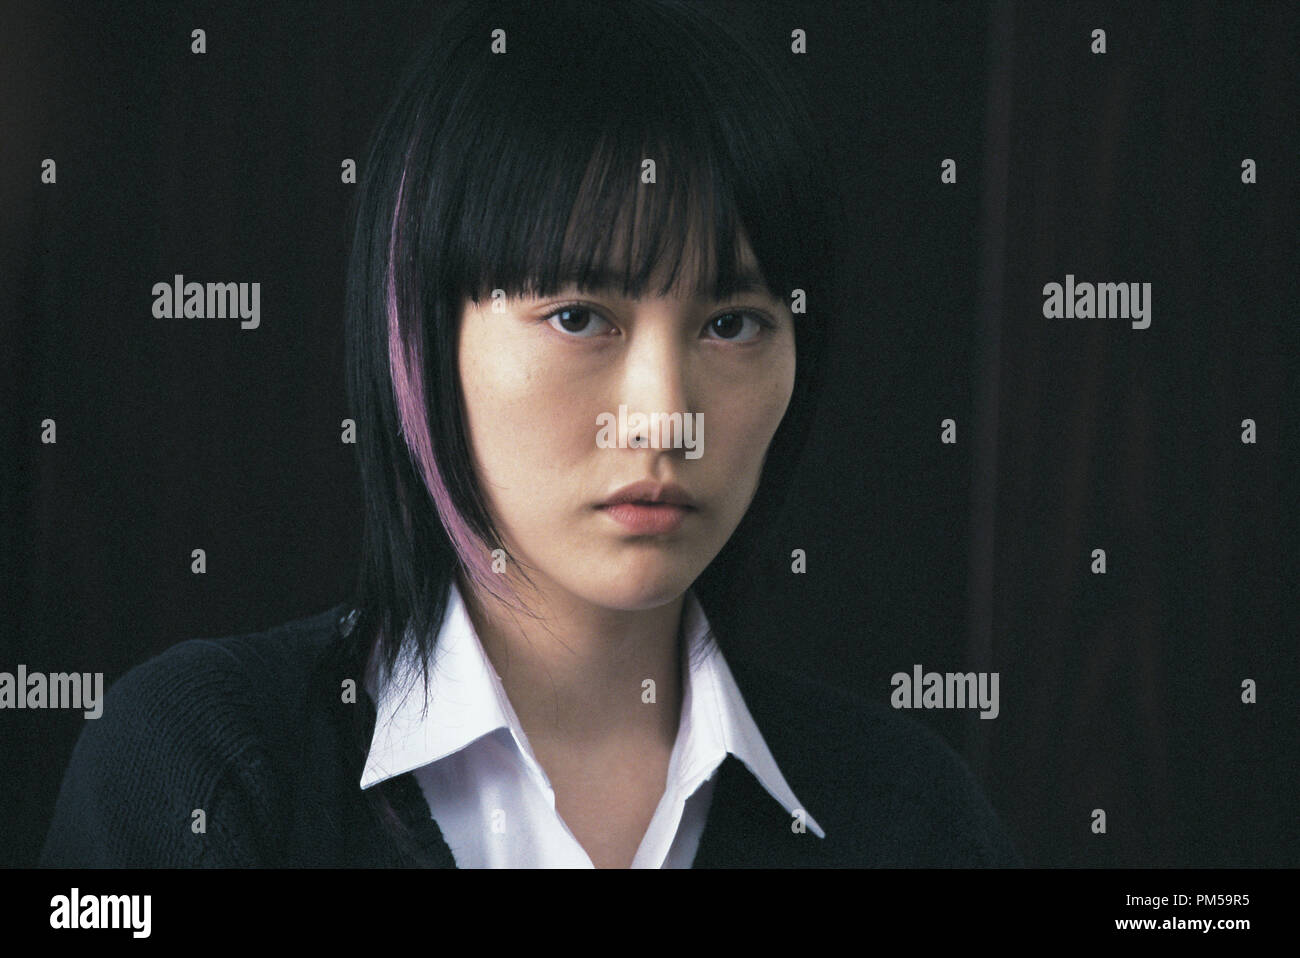 Studio Publicity Still from 'Babel' Rinko Kikuchi © 2006 Paramount Vantage  File Reference # 307371370THA  For Editorial Use Only -  All Rights Reserved - Stock Image